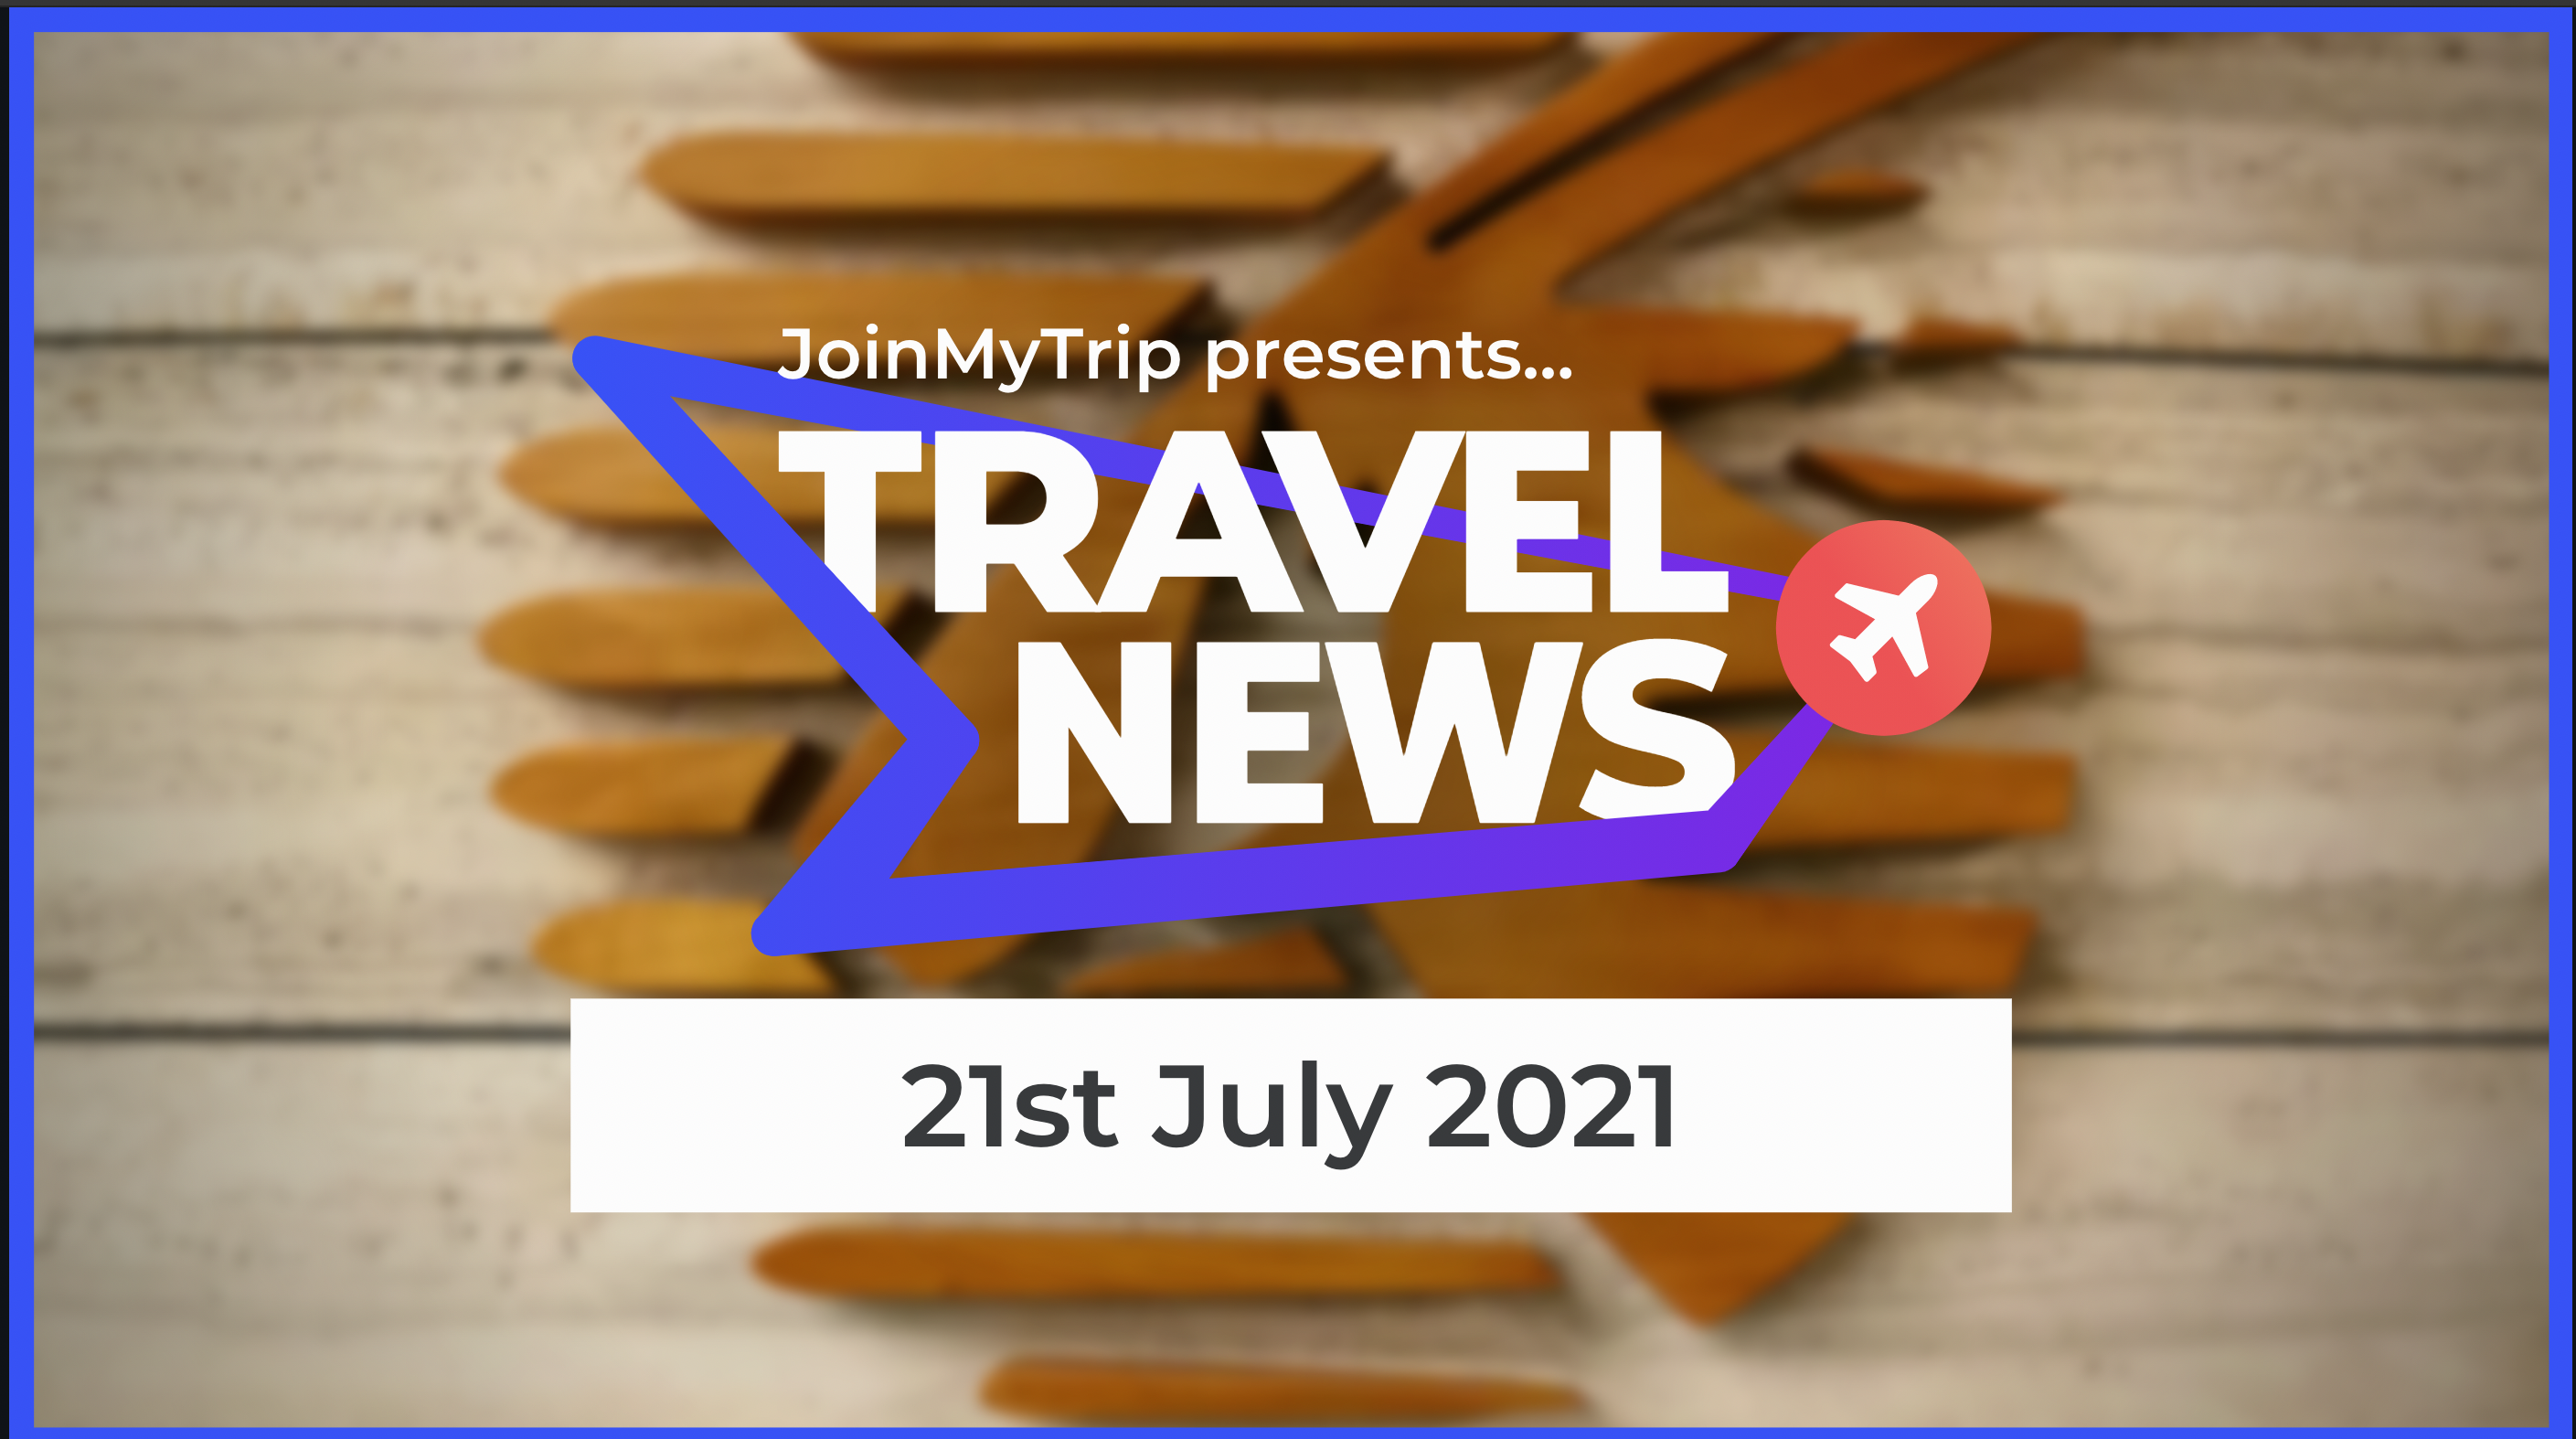 Travel News on the 21st of July 2021